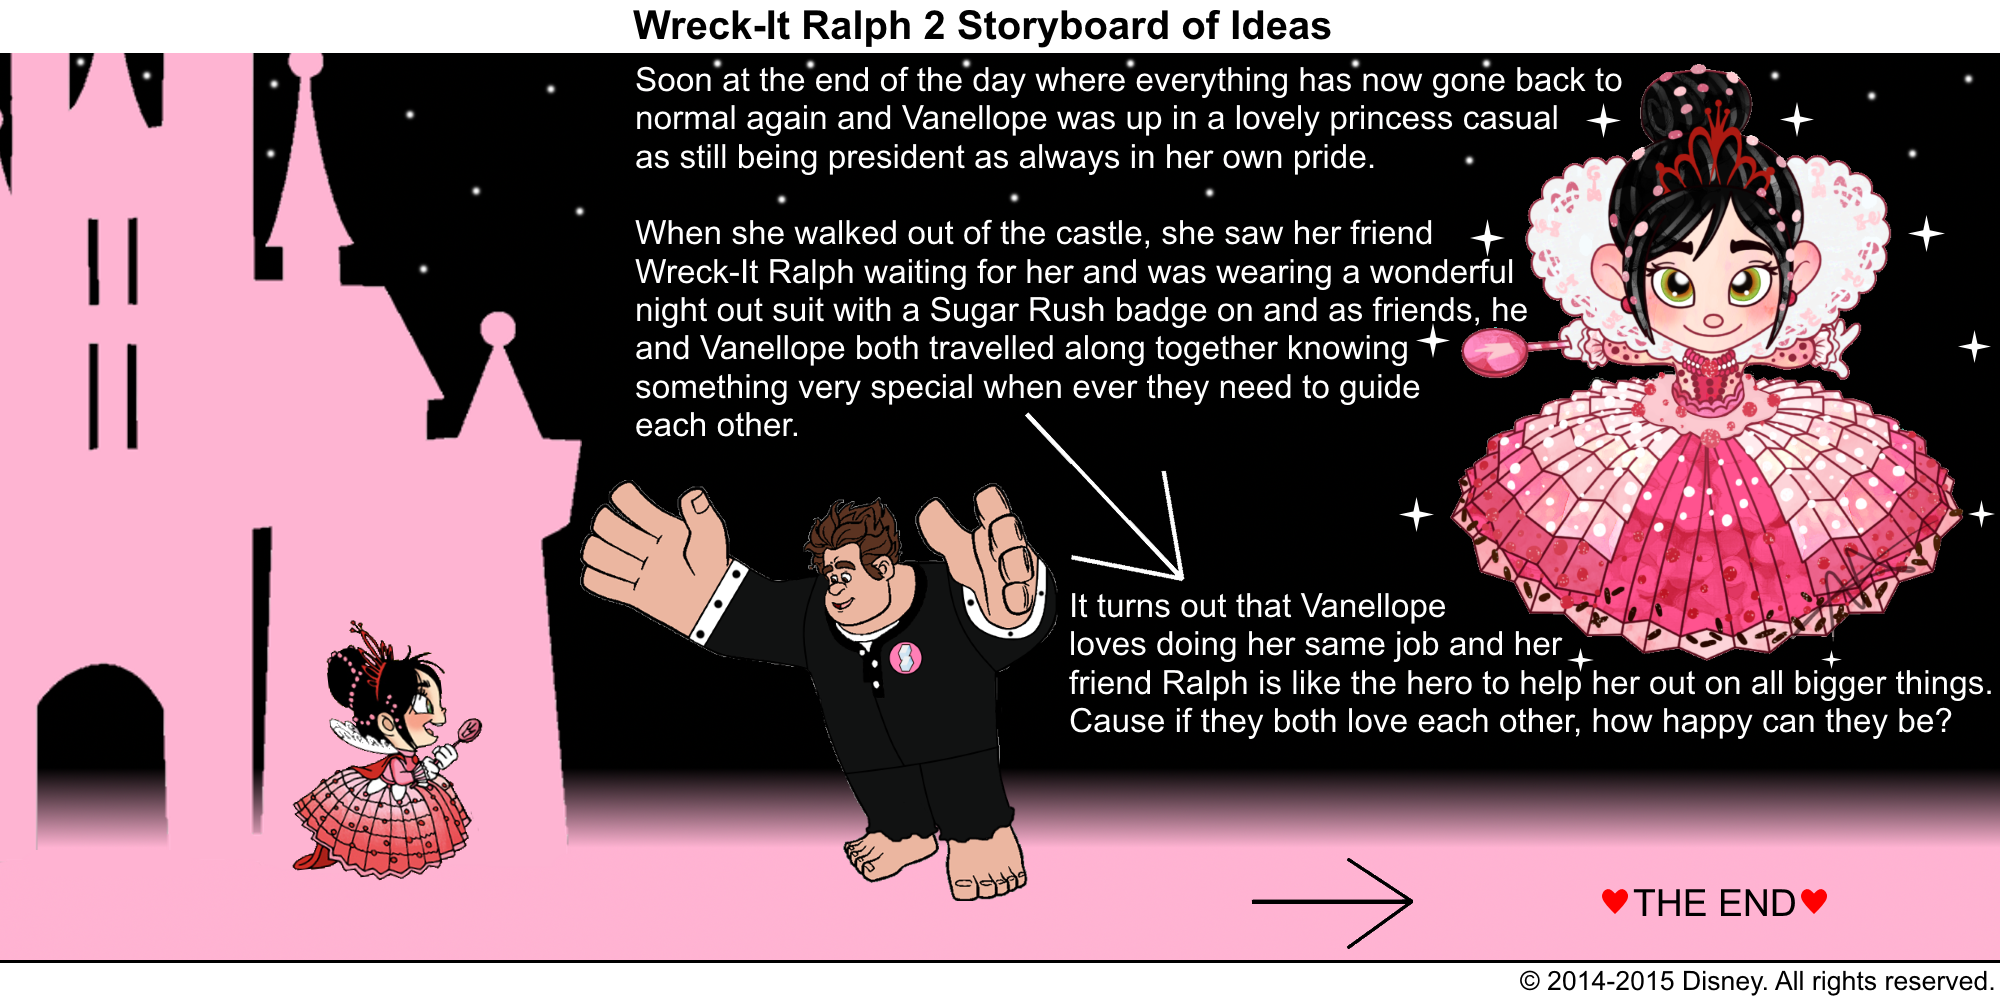 Best Lines From Wreck It Ralph 2: Wreck-It Ralph 2 Storyboard Of Ideas 52 (Final